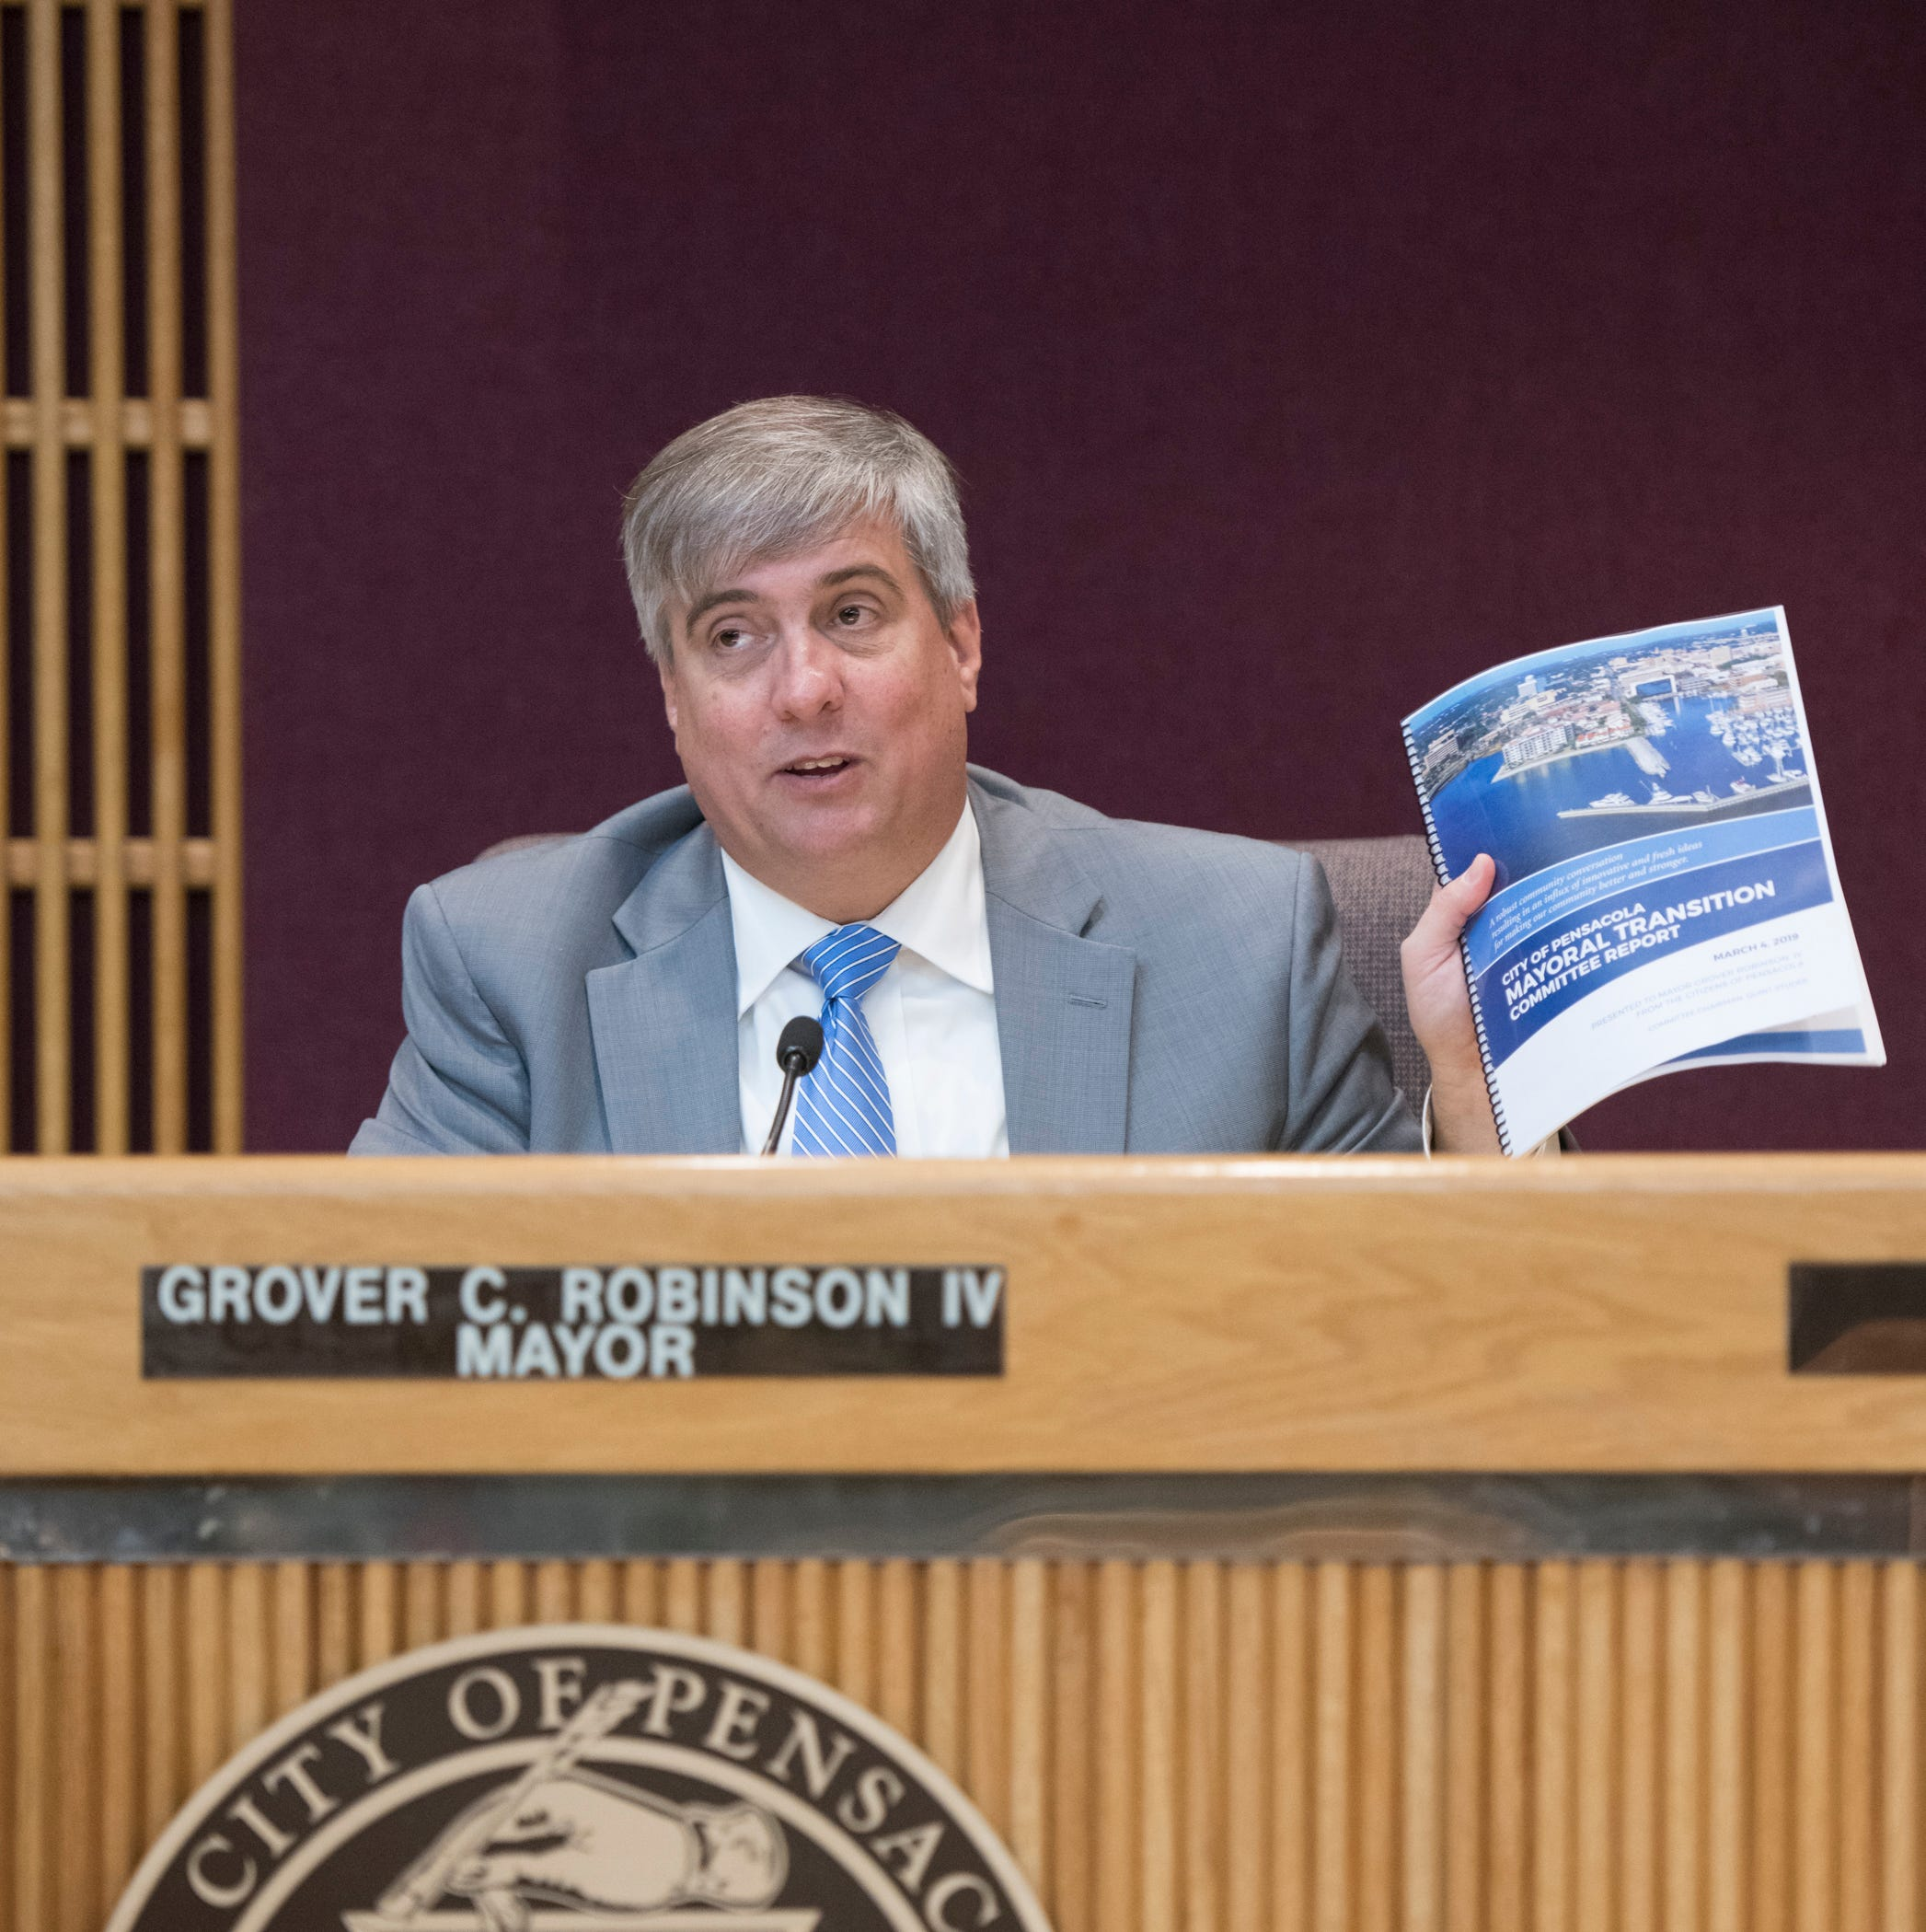 Pensacola Mayor Grover Robinson personally repays city for transition team expense